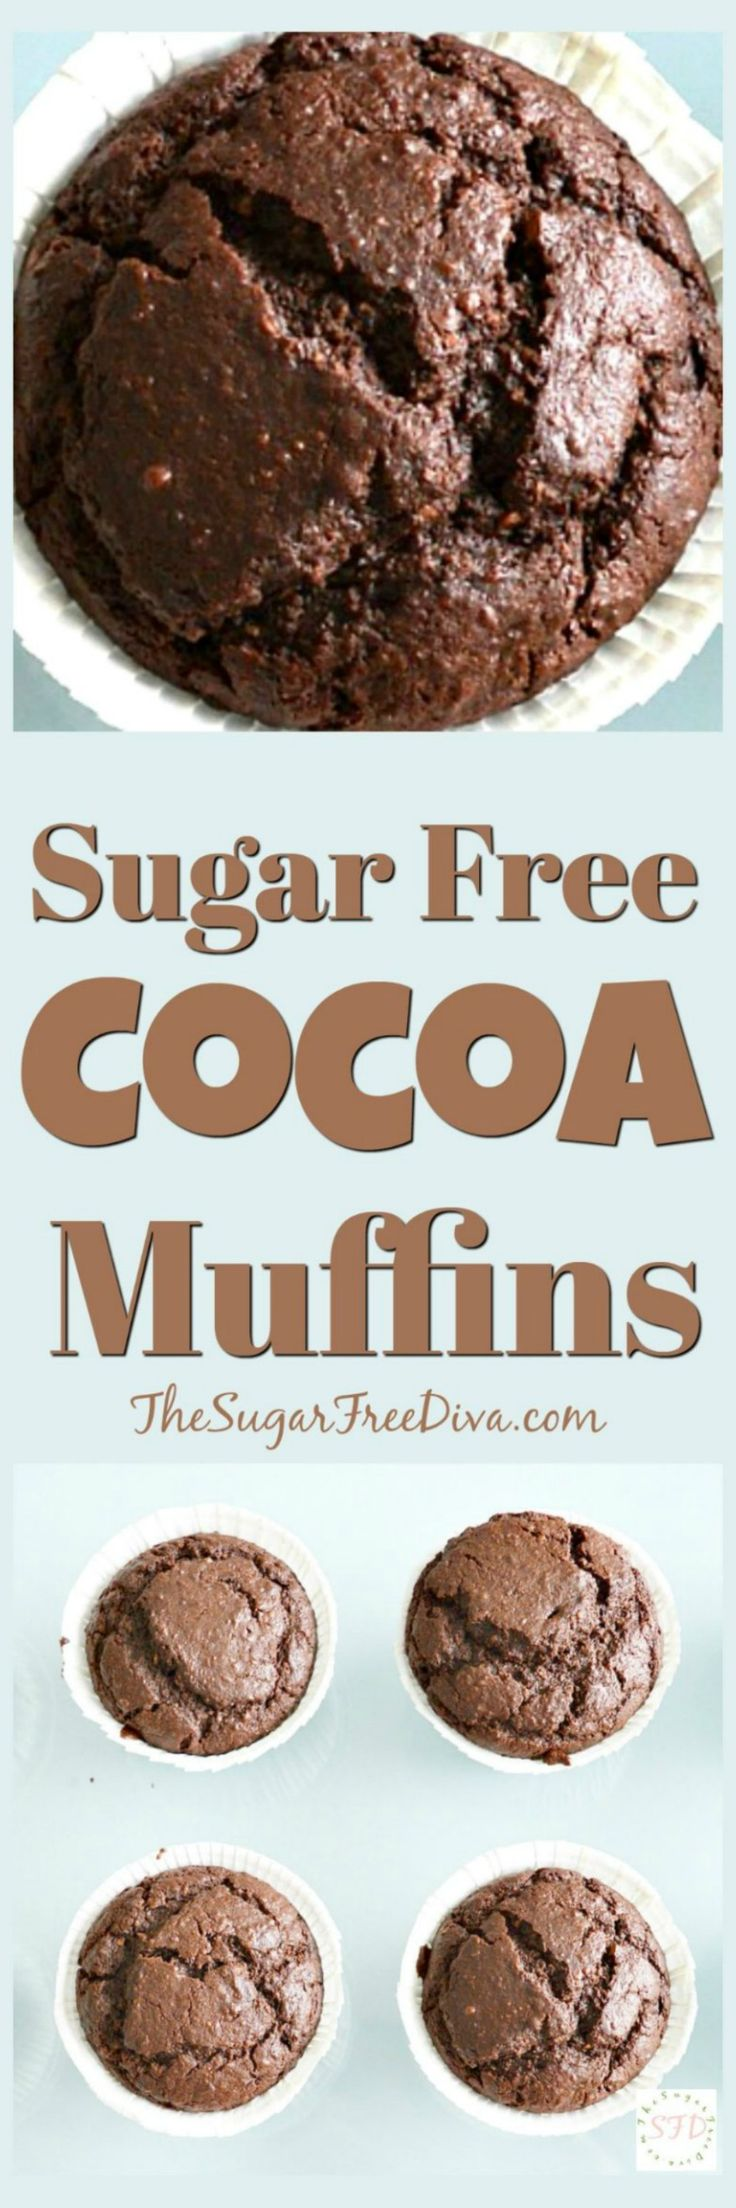 The perfect #muffin #recipe for #breakfast  #sugarfree #cocoa #easy #yummyfood  #yummy